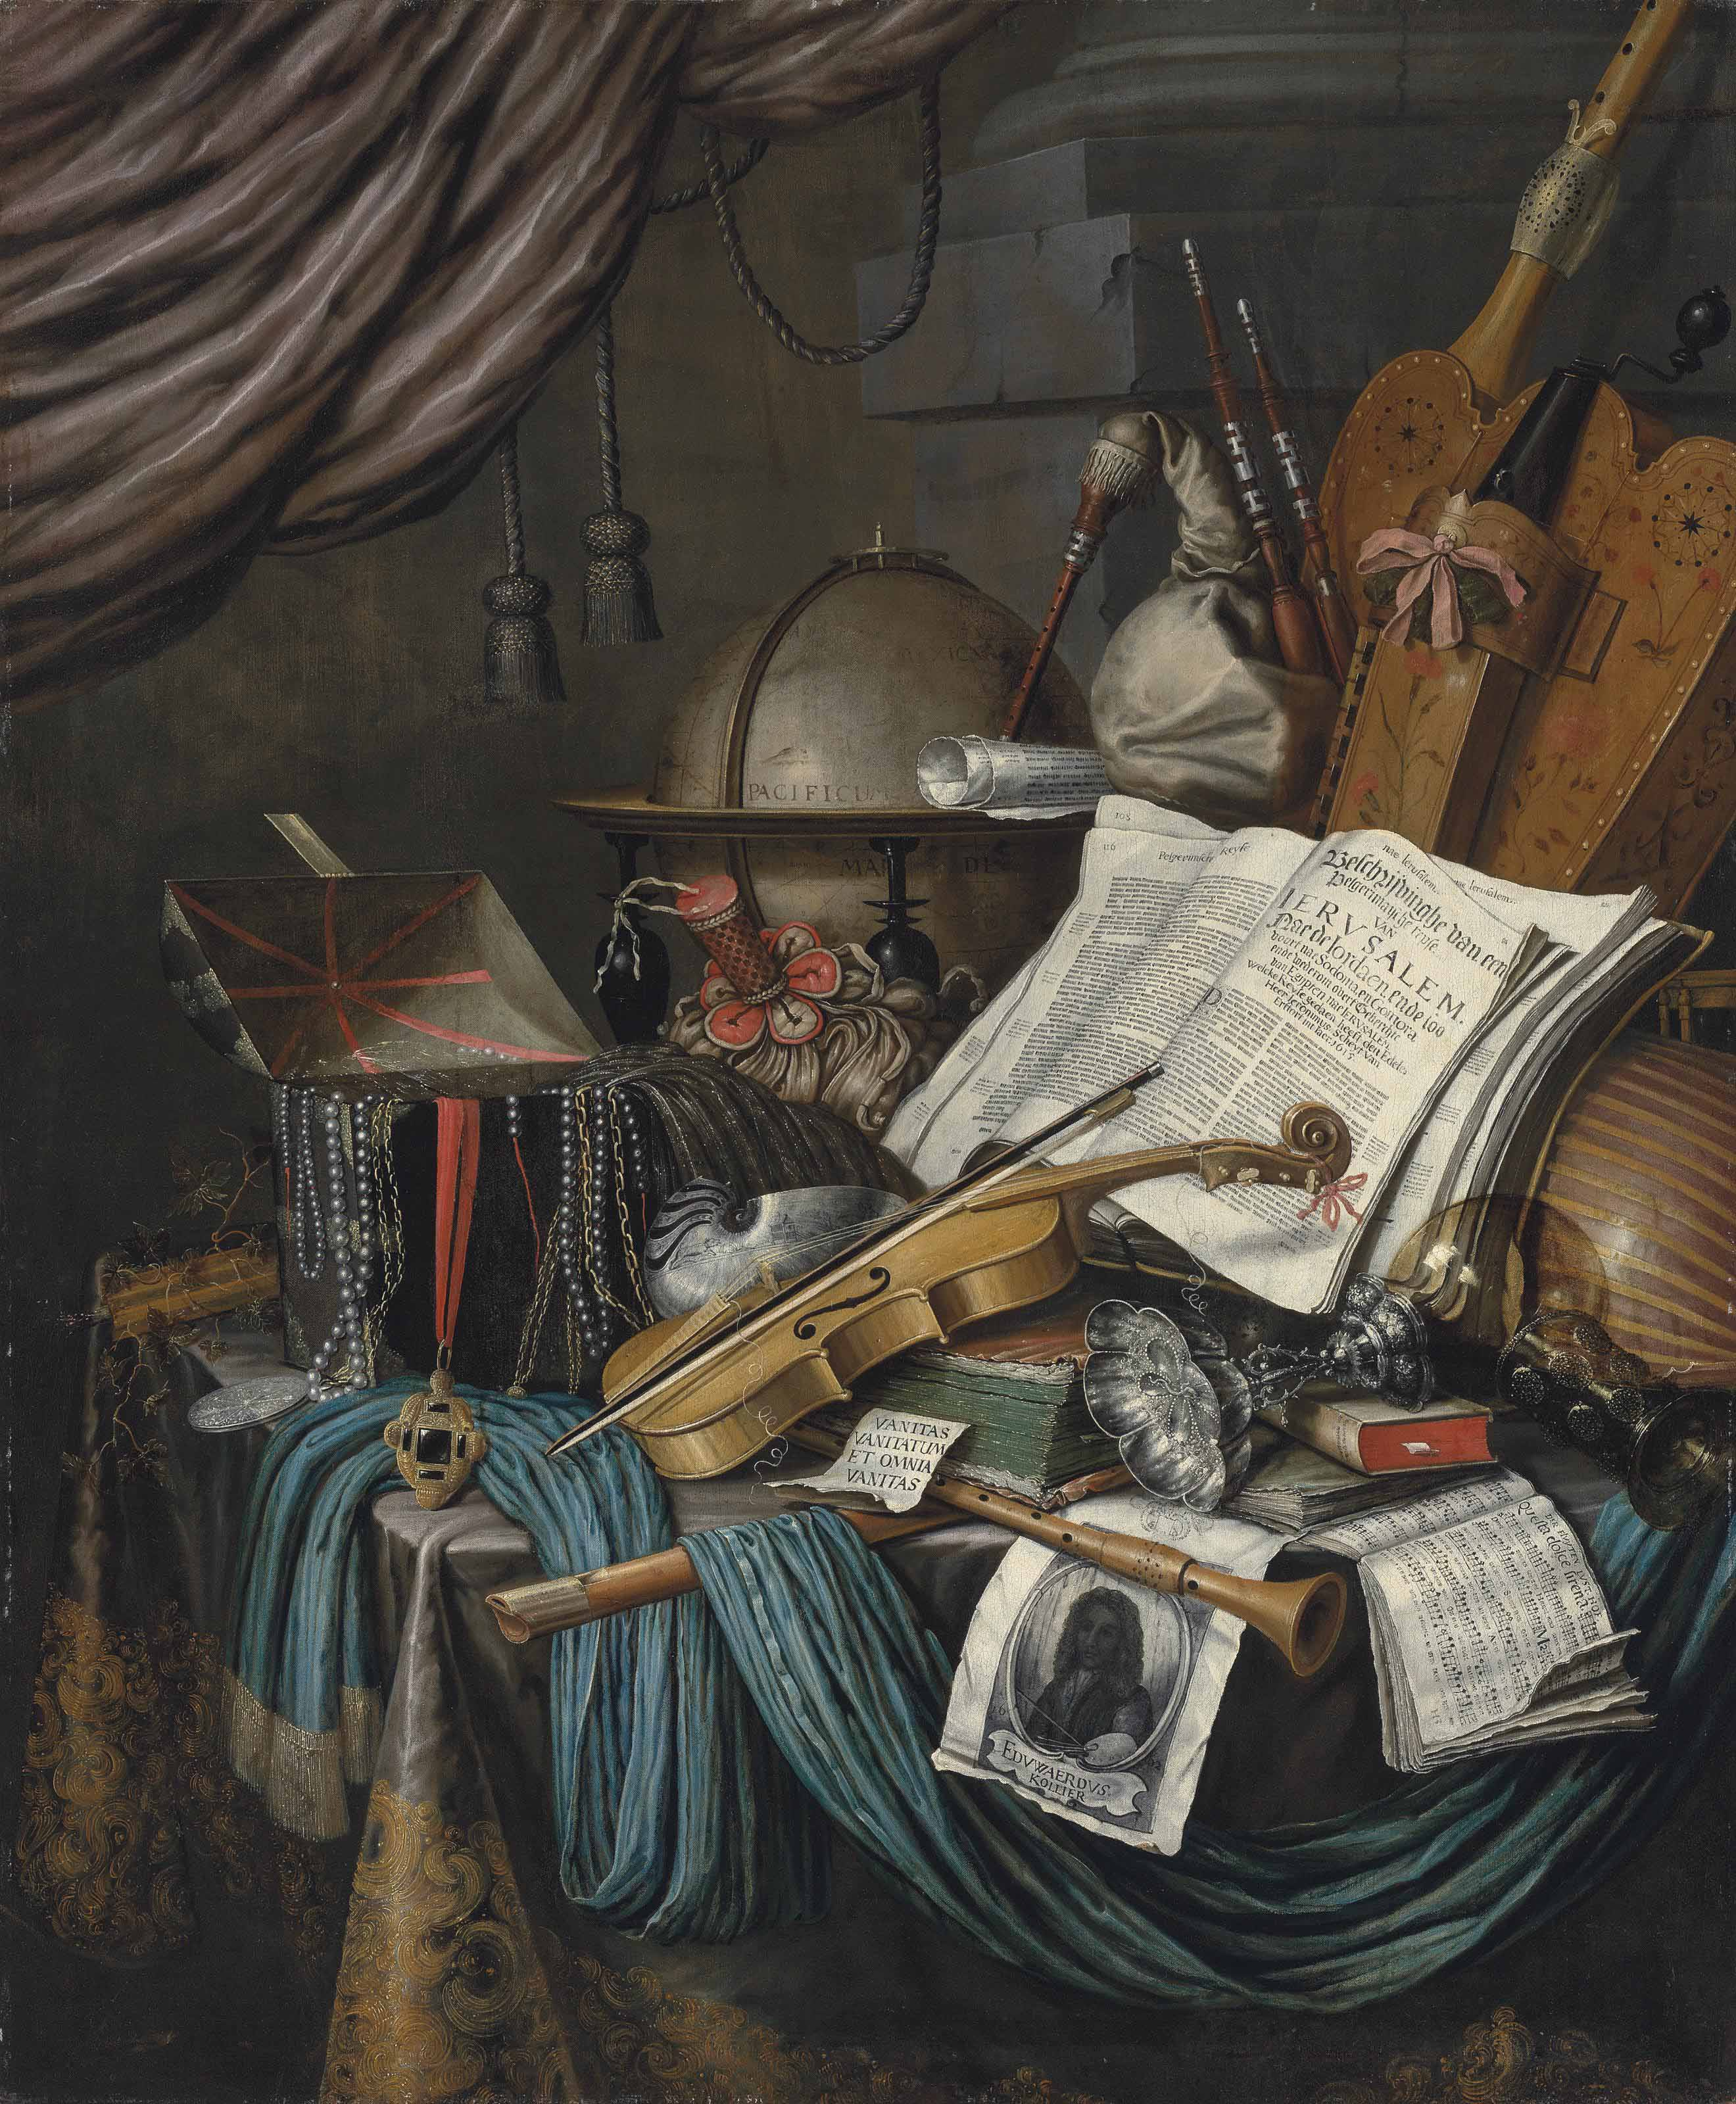 A globe, a casket of jewels and medallions, books, a hurdy-gurdy, a bagpipe, a lute, a violin, an upturned silver tazza and roemer, a nautilus shell, a recorder, a shawm, a print with a self-portrait of the artist and a musical score on a draped table, a curtain above